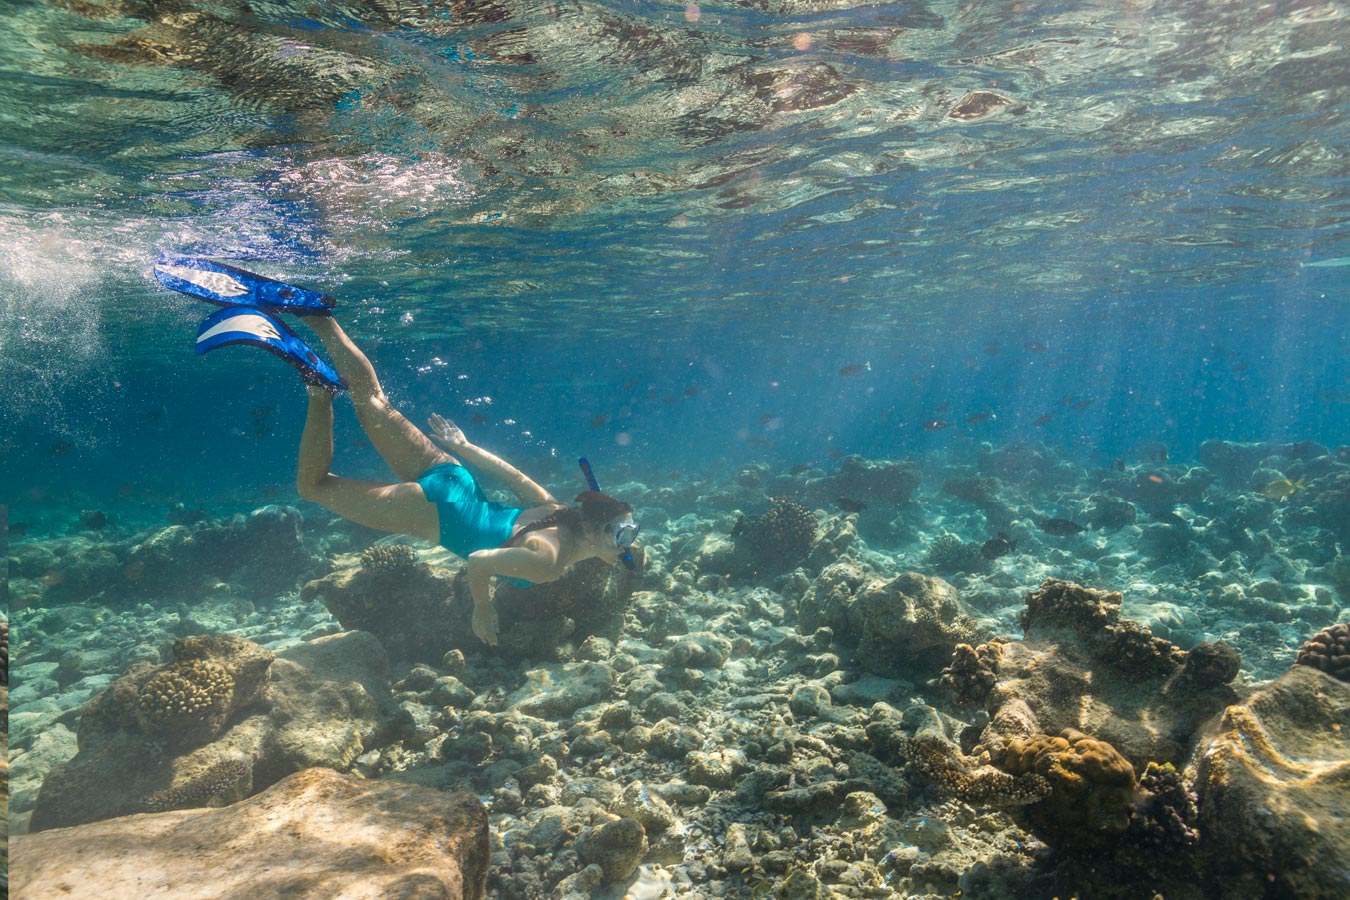 Snorkelling at Kurumba Maldives image| Kurumba Maldives Resort